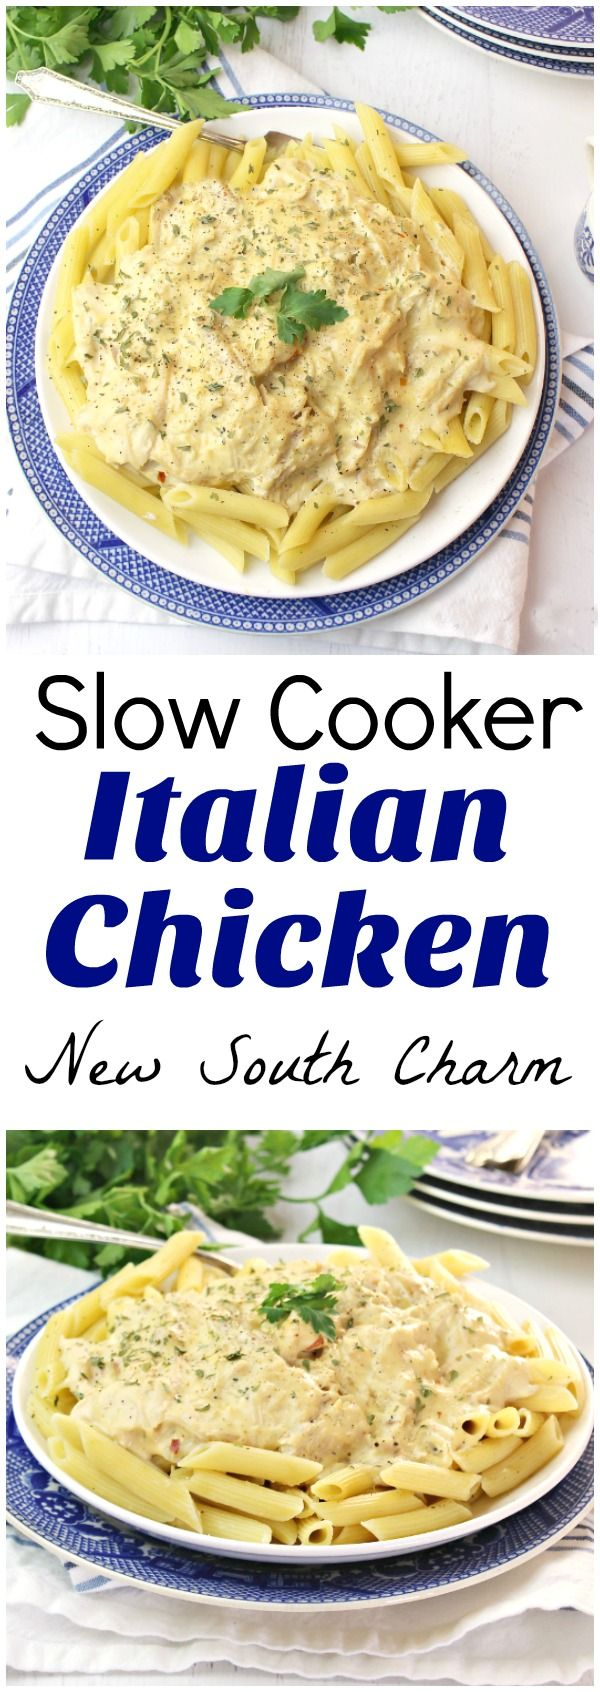 Slow Cooker Italian Chicken is a long time family favorite that takes just a  few minutes of prep to create.